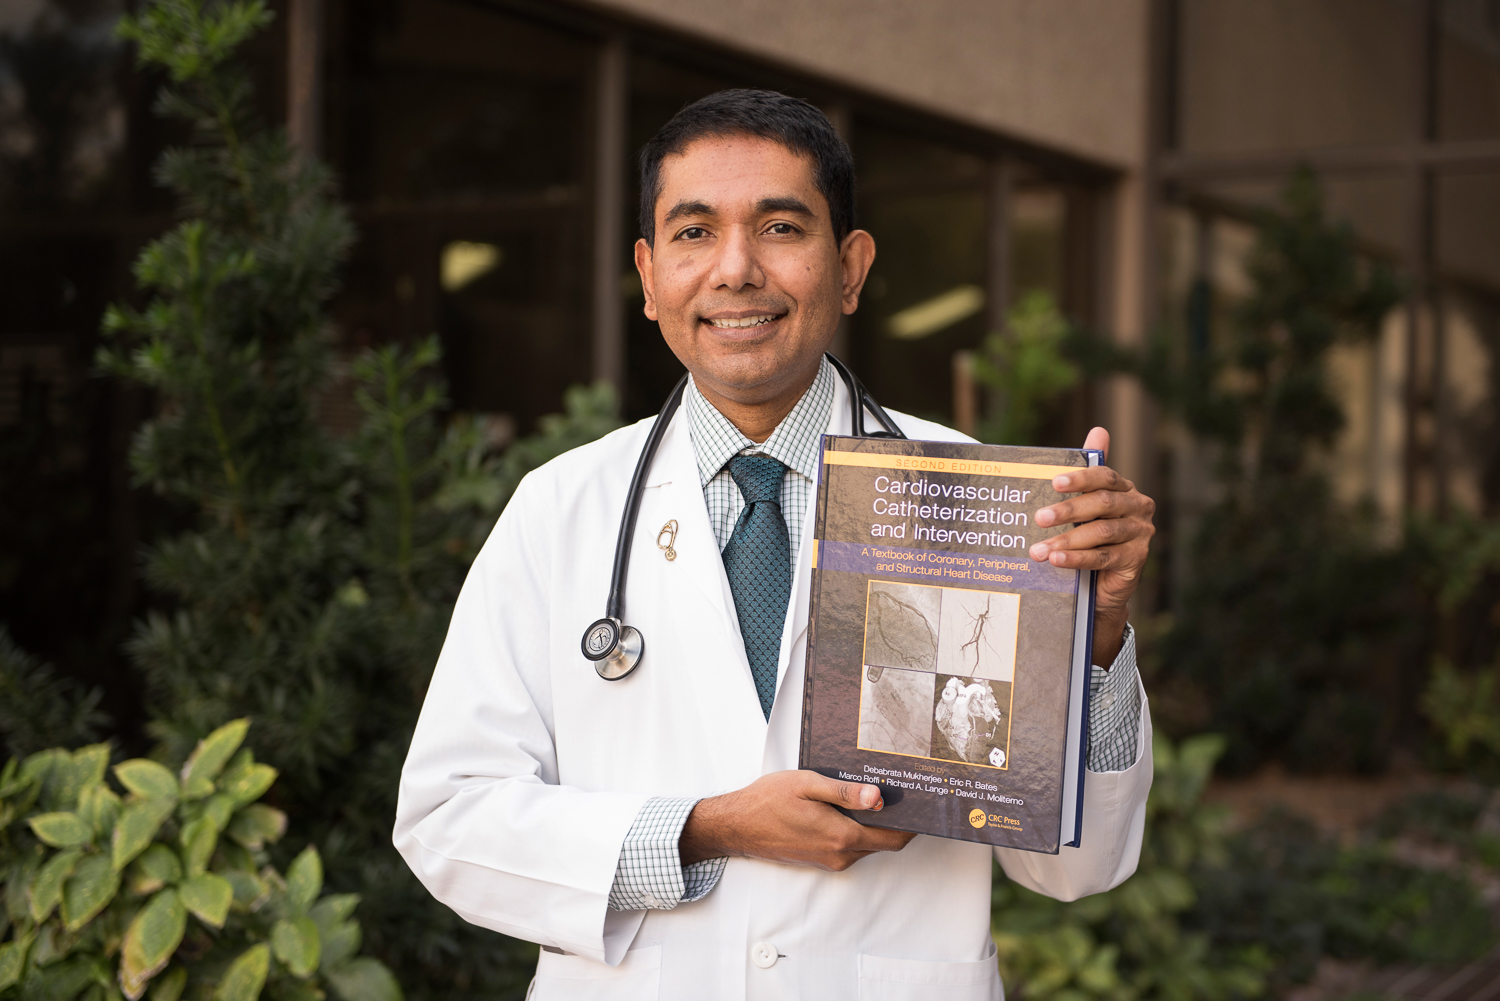 TTUHSC El Paso Faculty Publish Cardiology Textbook